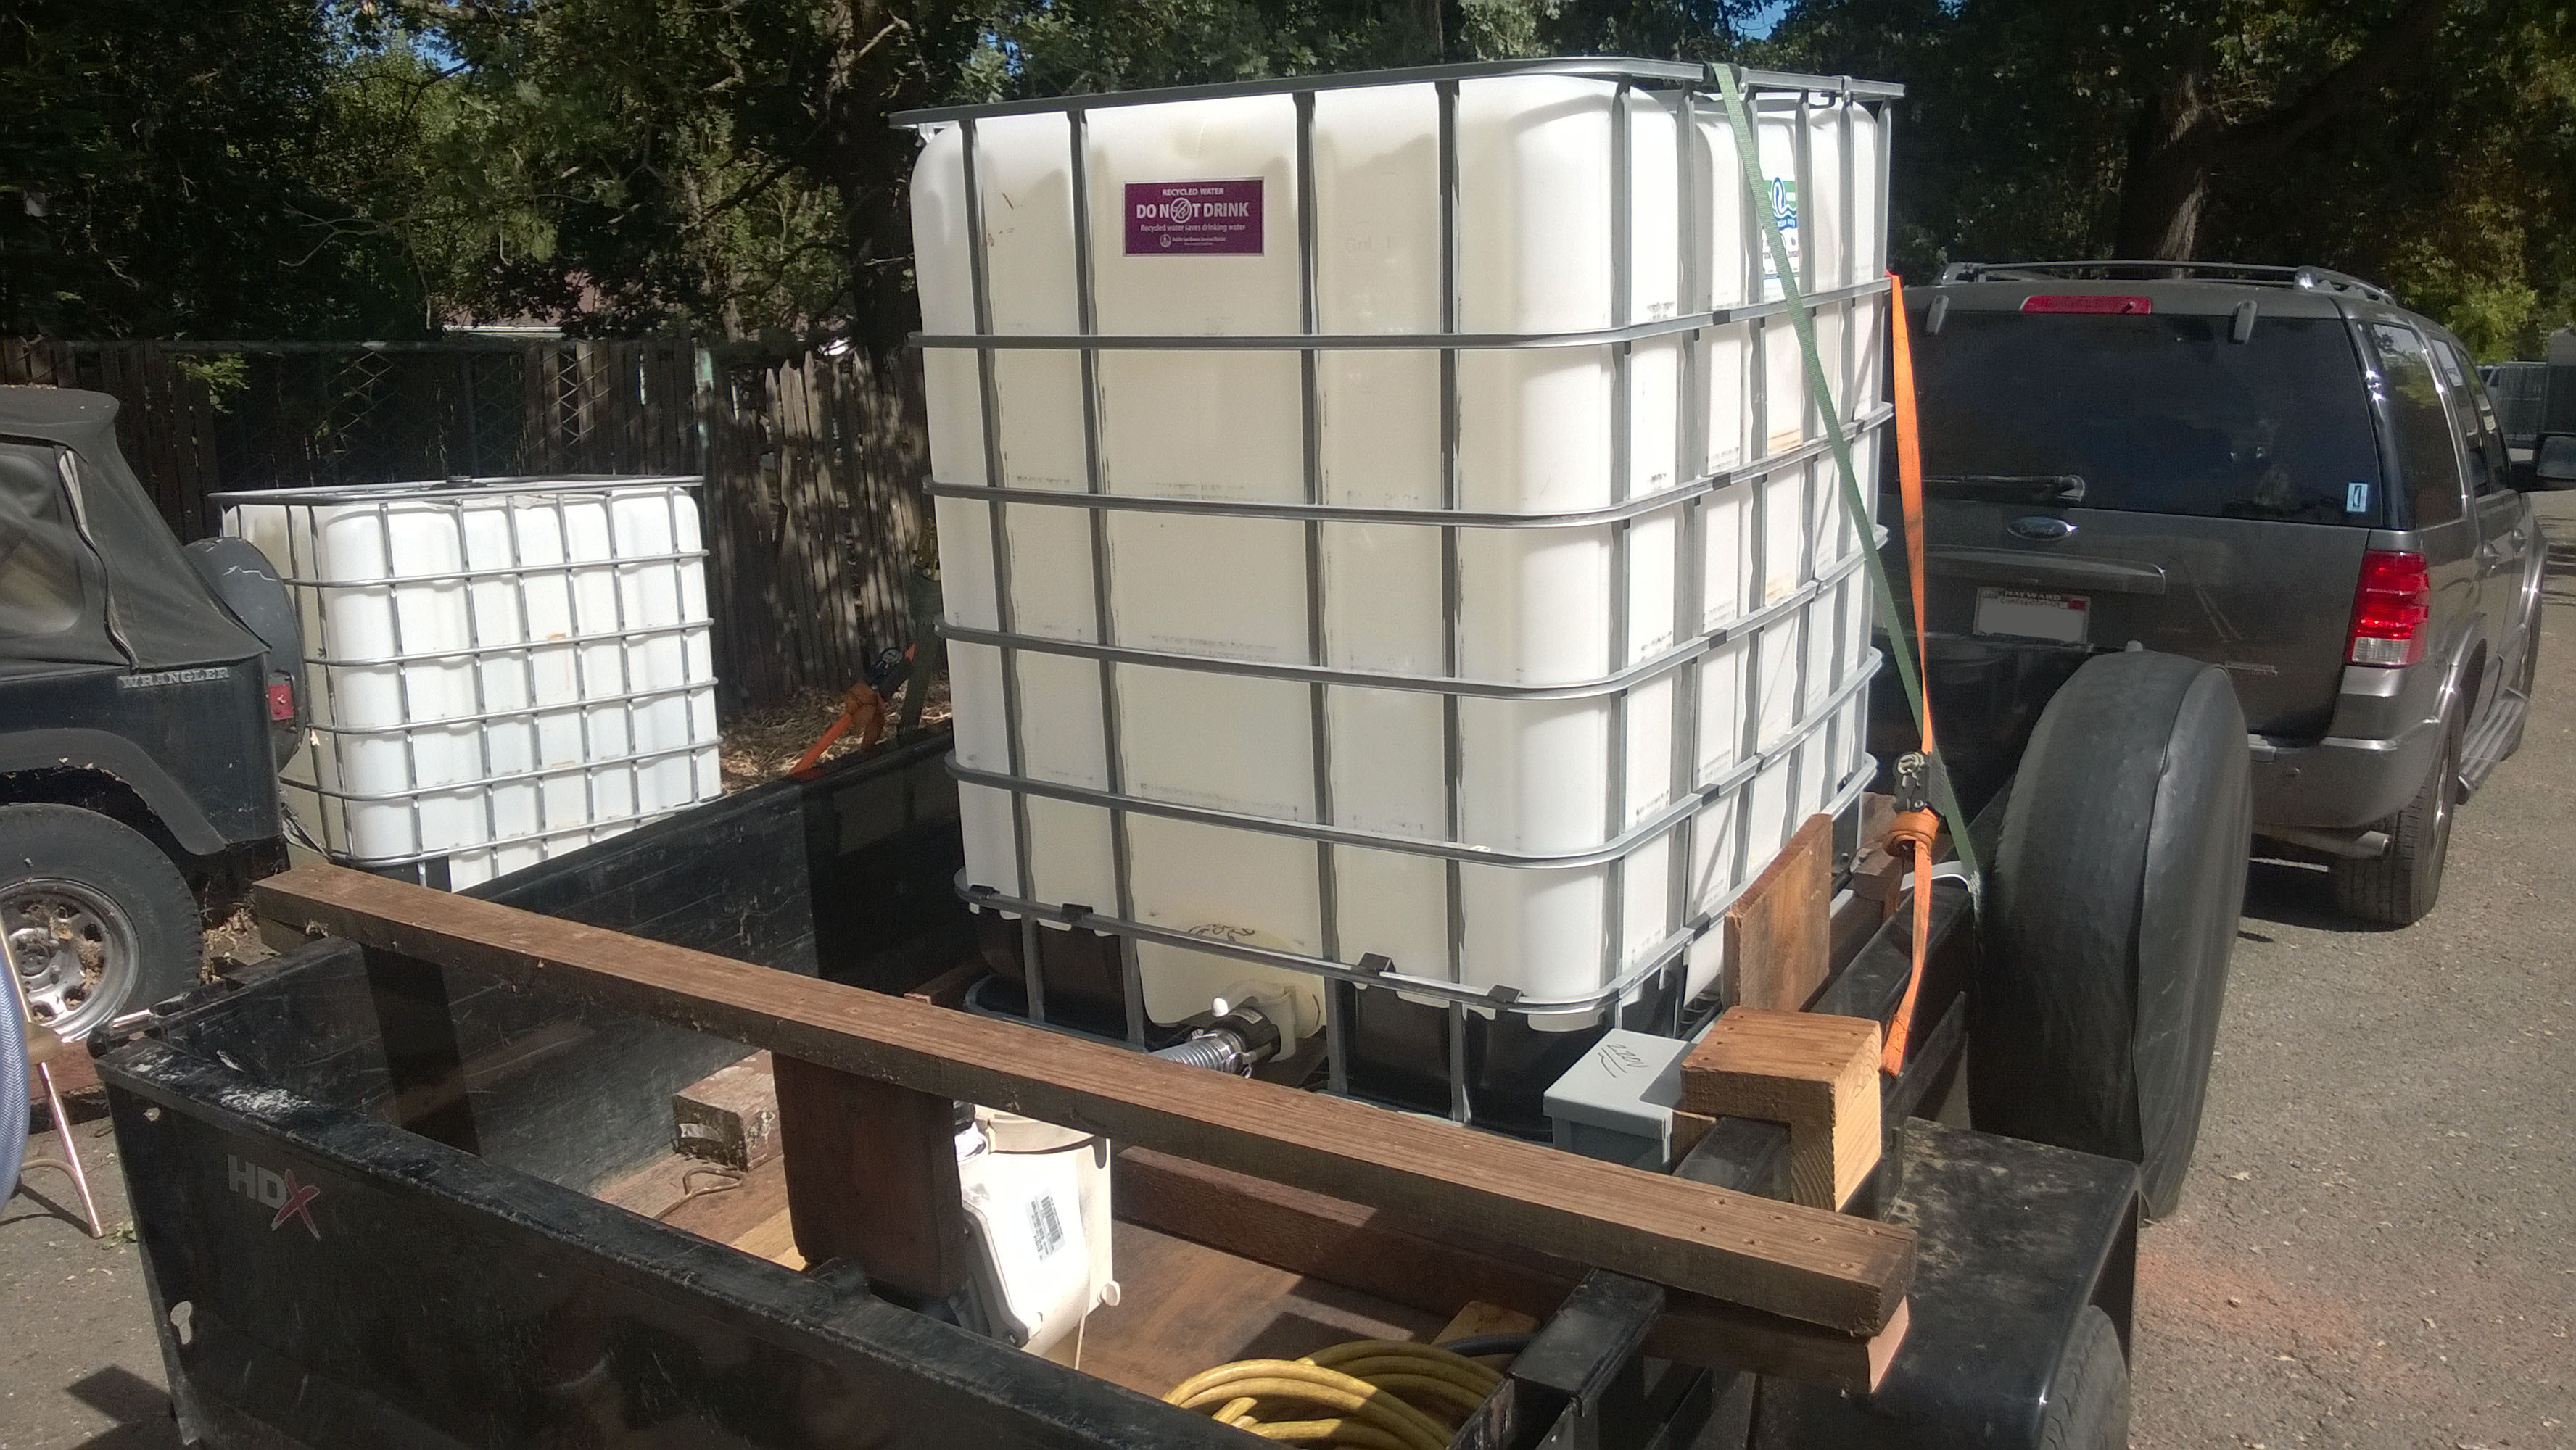 275 gallon tote vs Water Bladder vs 55 gallon barrel RecycledH2O